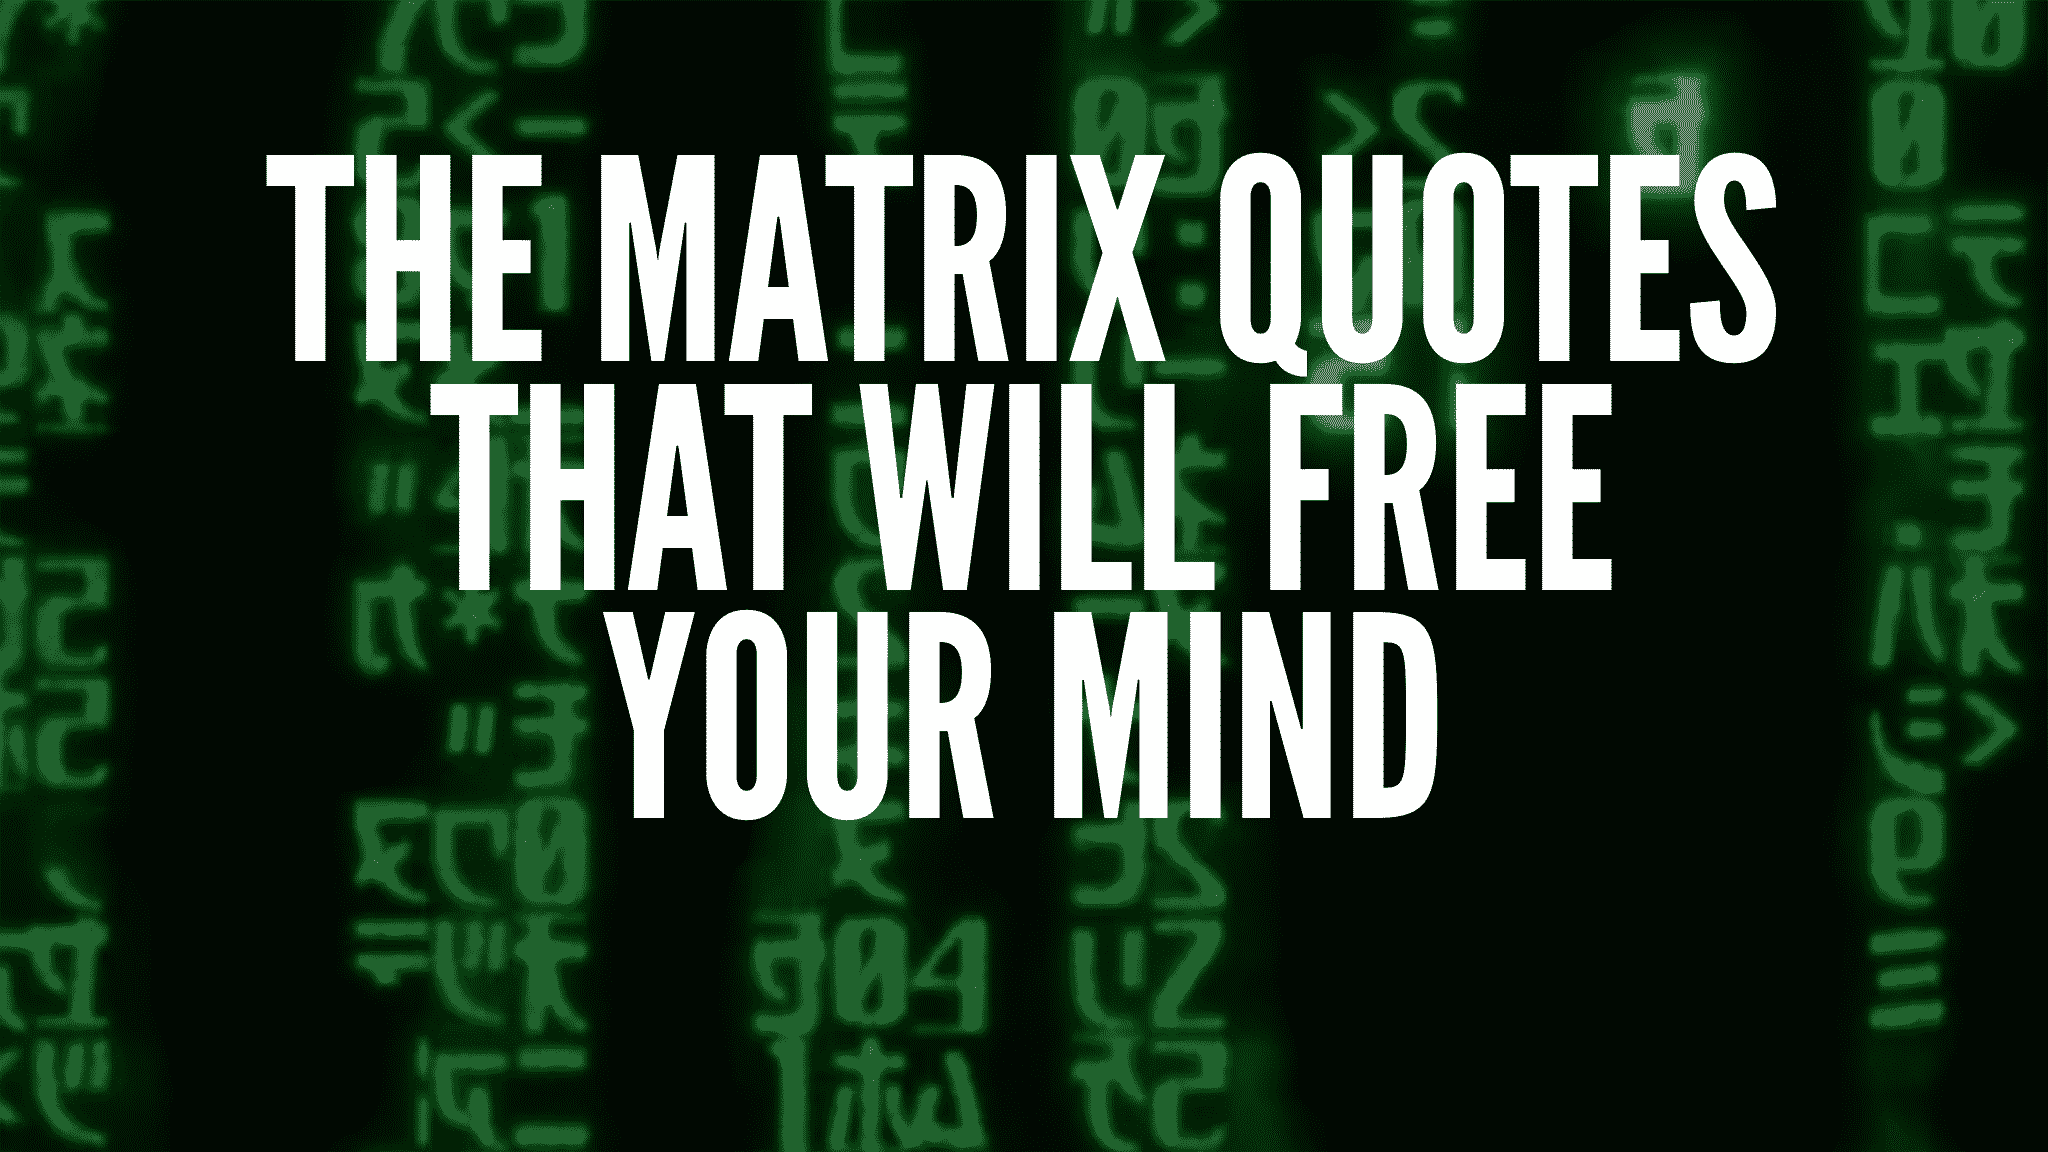 The Matrix Quotes That Will Free Your Mind